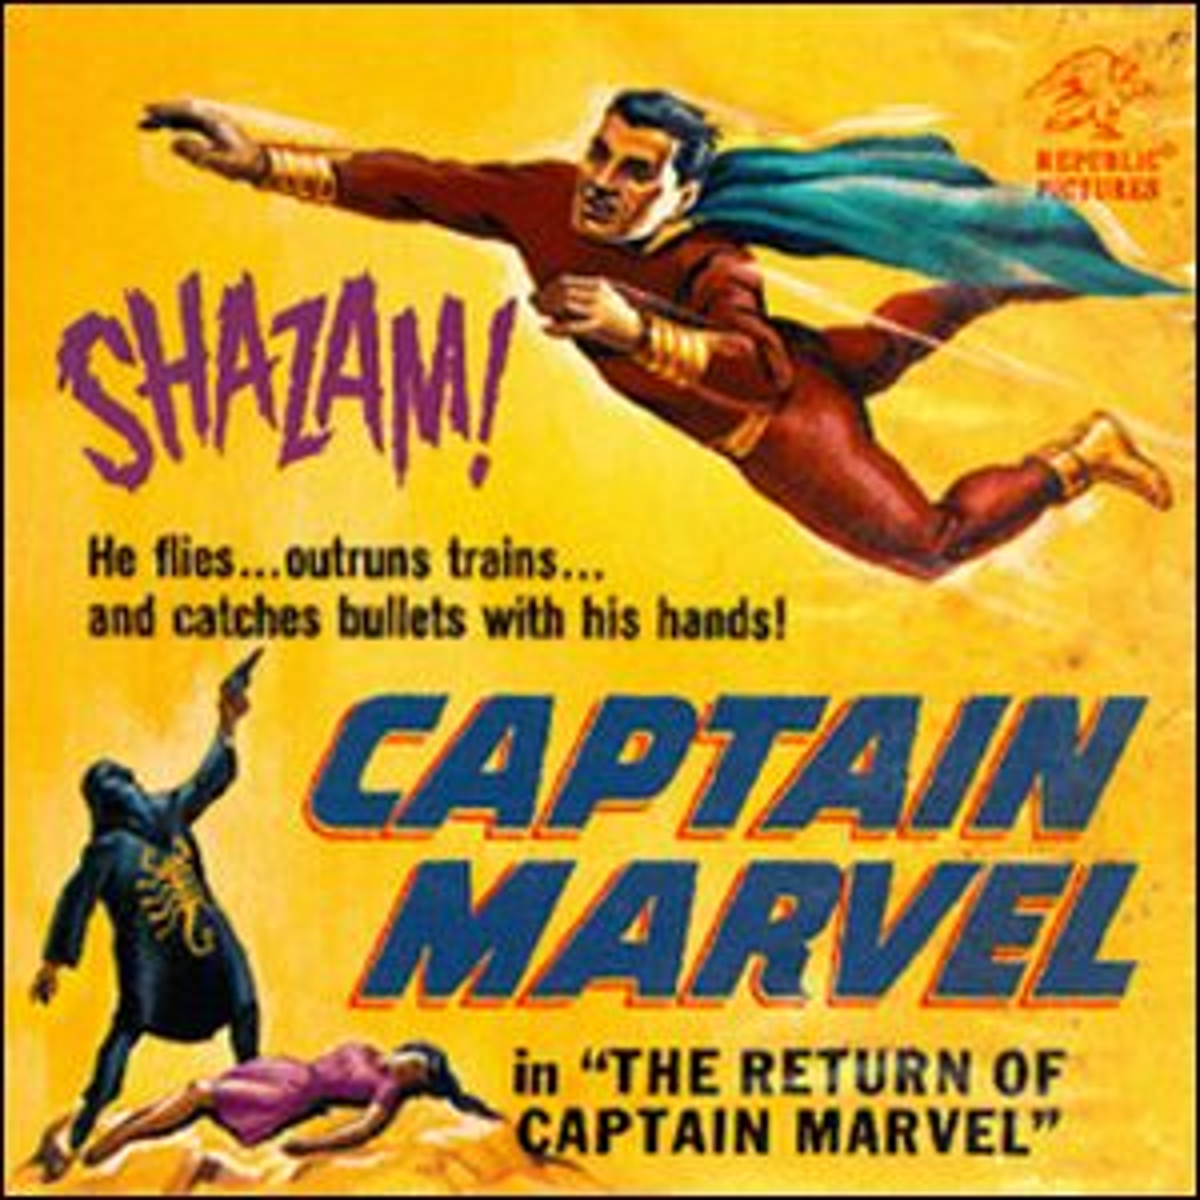 A poster for the movie re-release of the first Captain Marvel chapter serial.